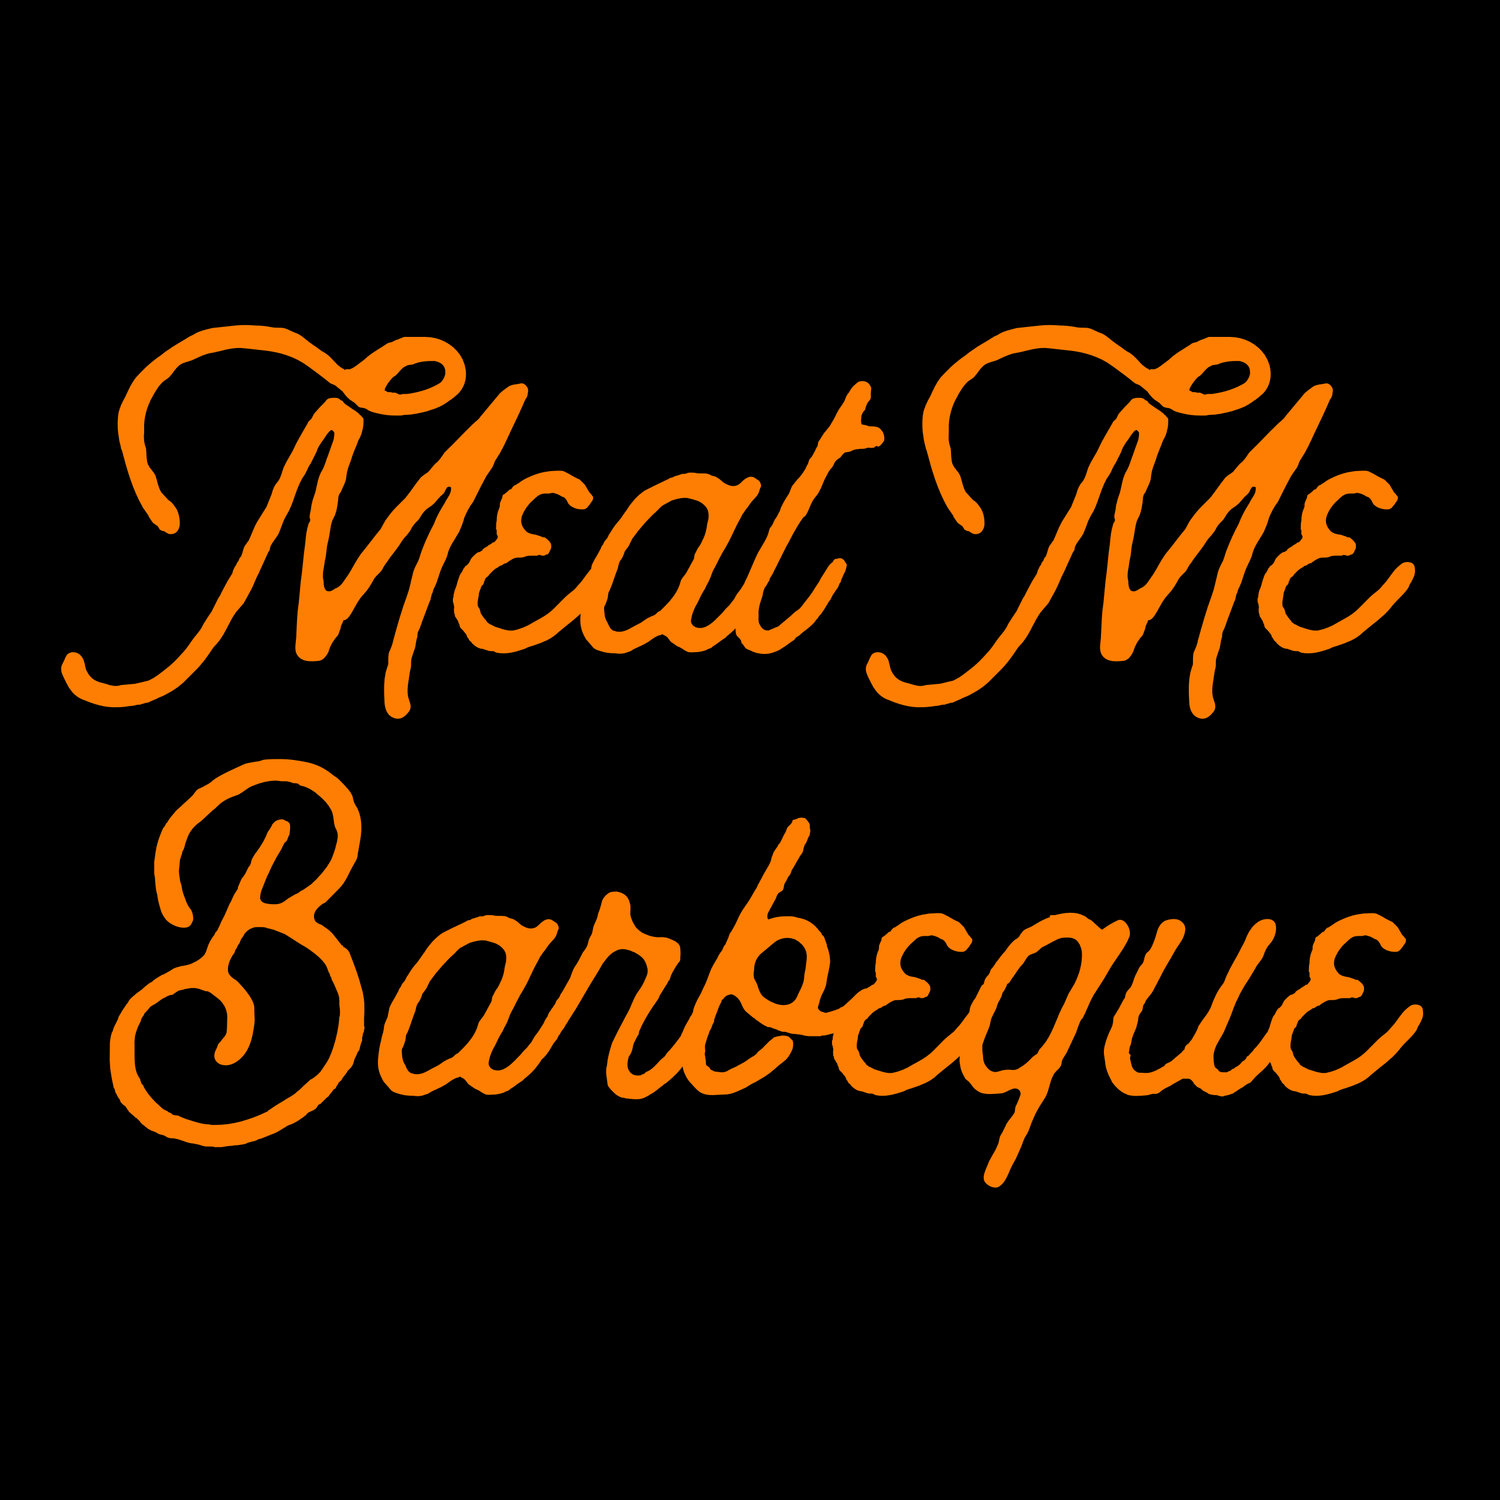 MEAT ME BARBEQUE PTY LTD